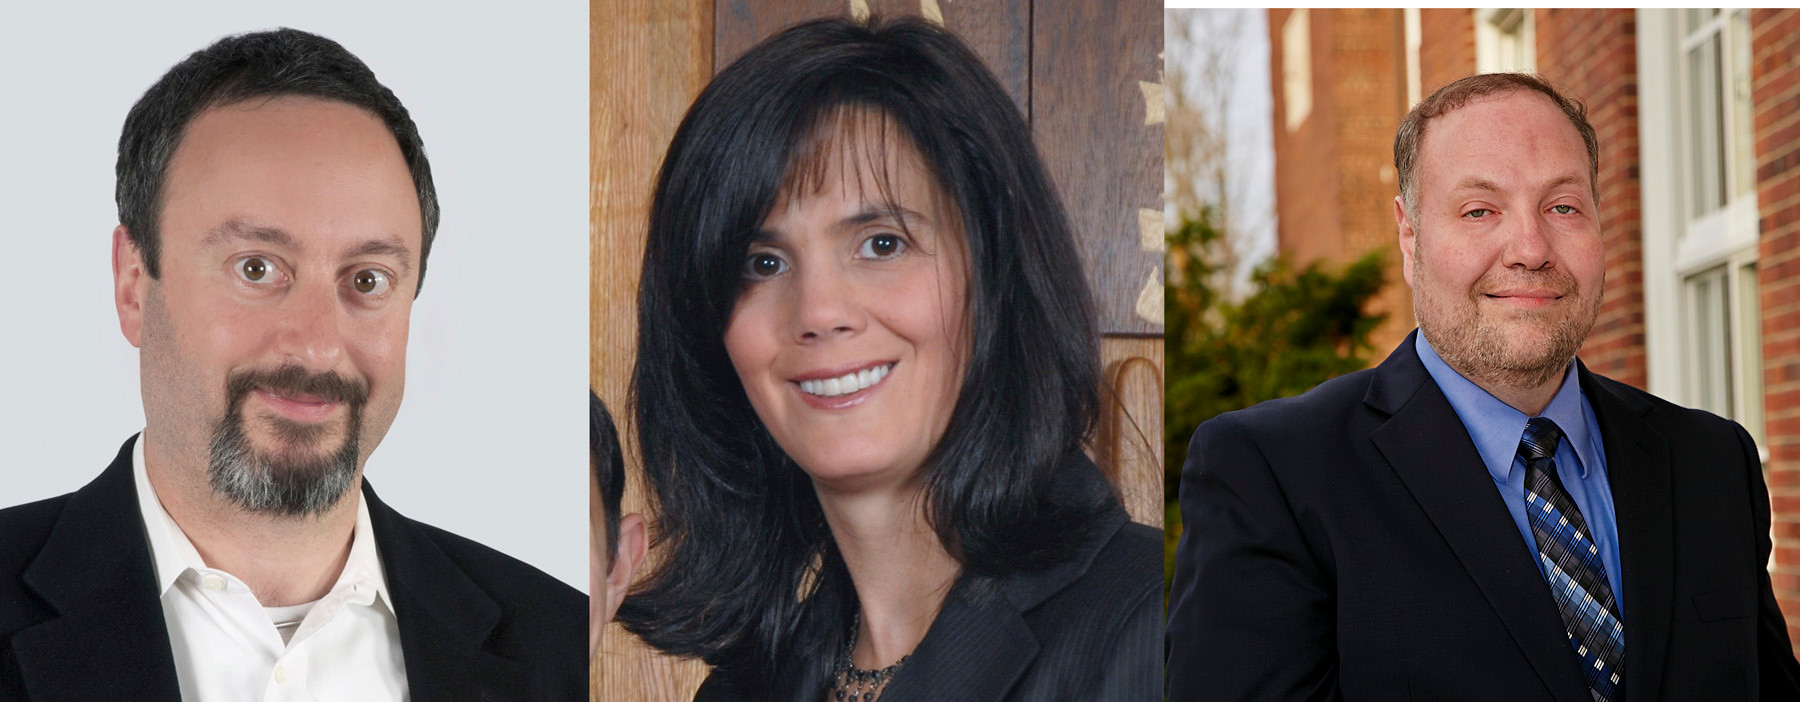 A recount of votes in one of the three Lawrence Board of Education races now has Tova Plaut, center, in the lead over Jesse Lunin-Pack, left. Dov Herman, right, finished third with 840 votes.